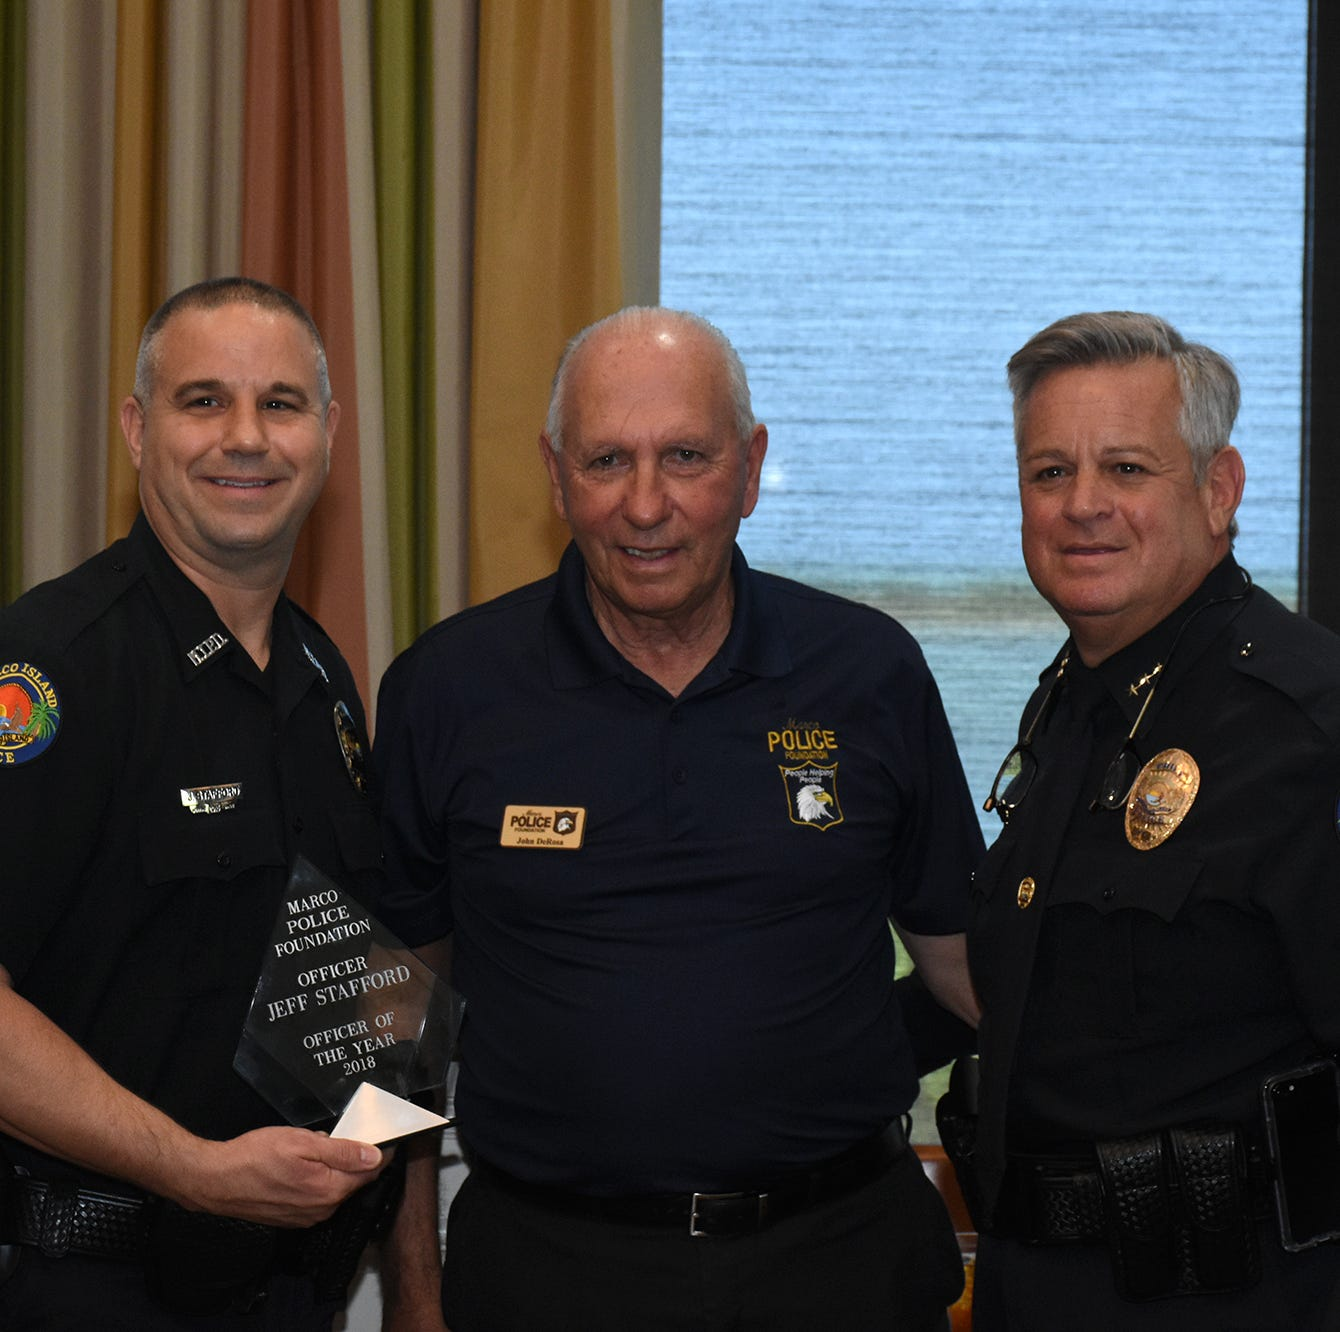 Stafford named officer of year at luncheon